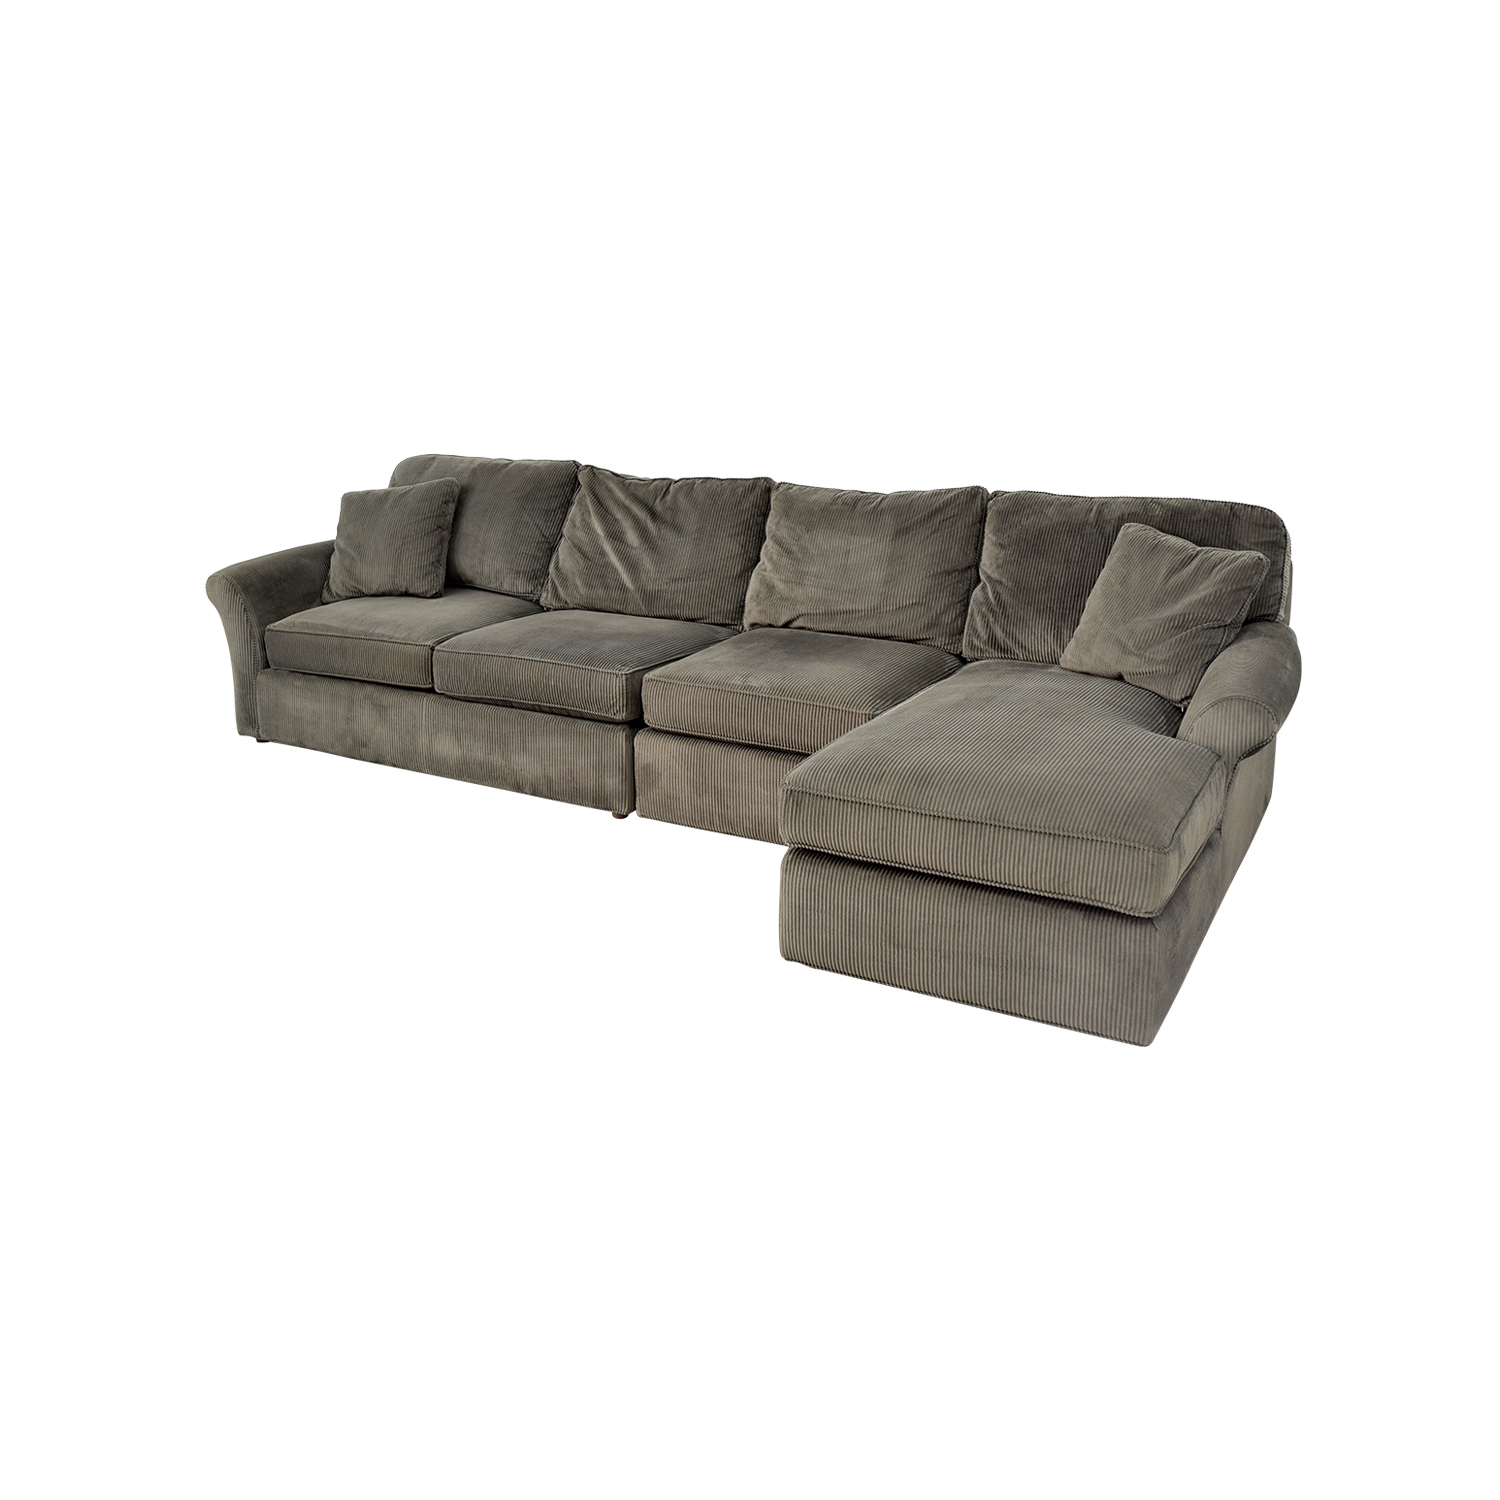 74 off macy39s macy39s modern concepts charcoal gray for Used modern sectional sofa